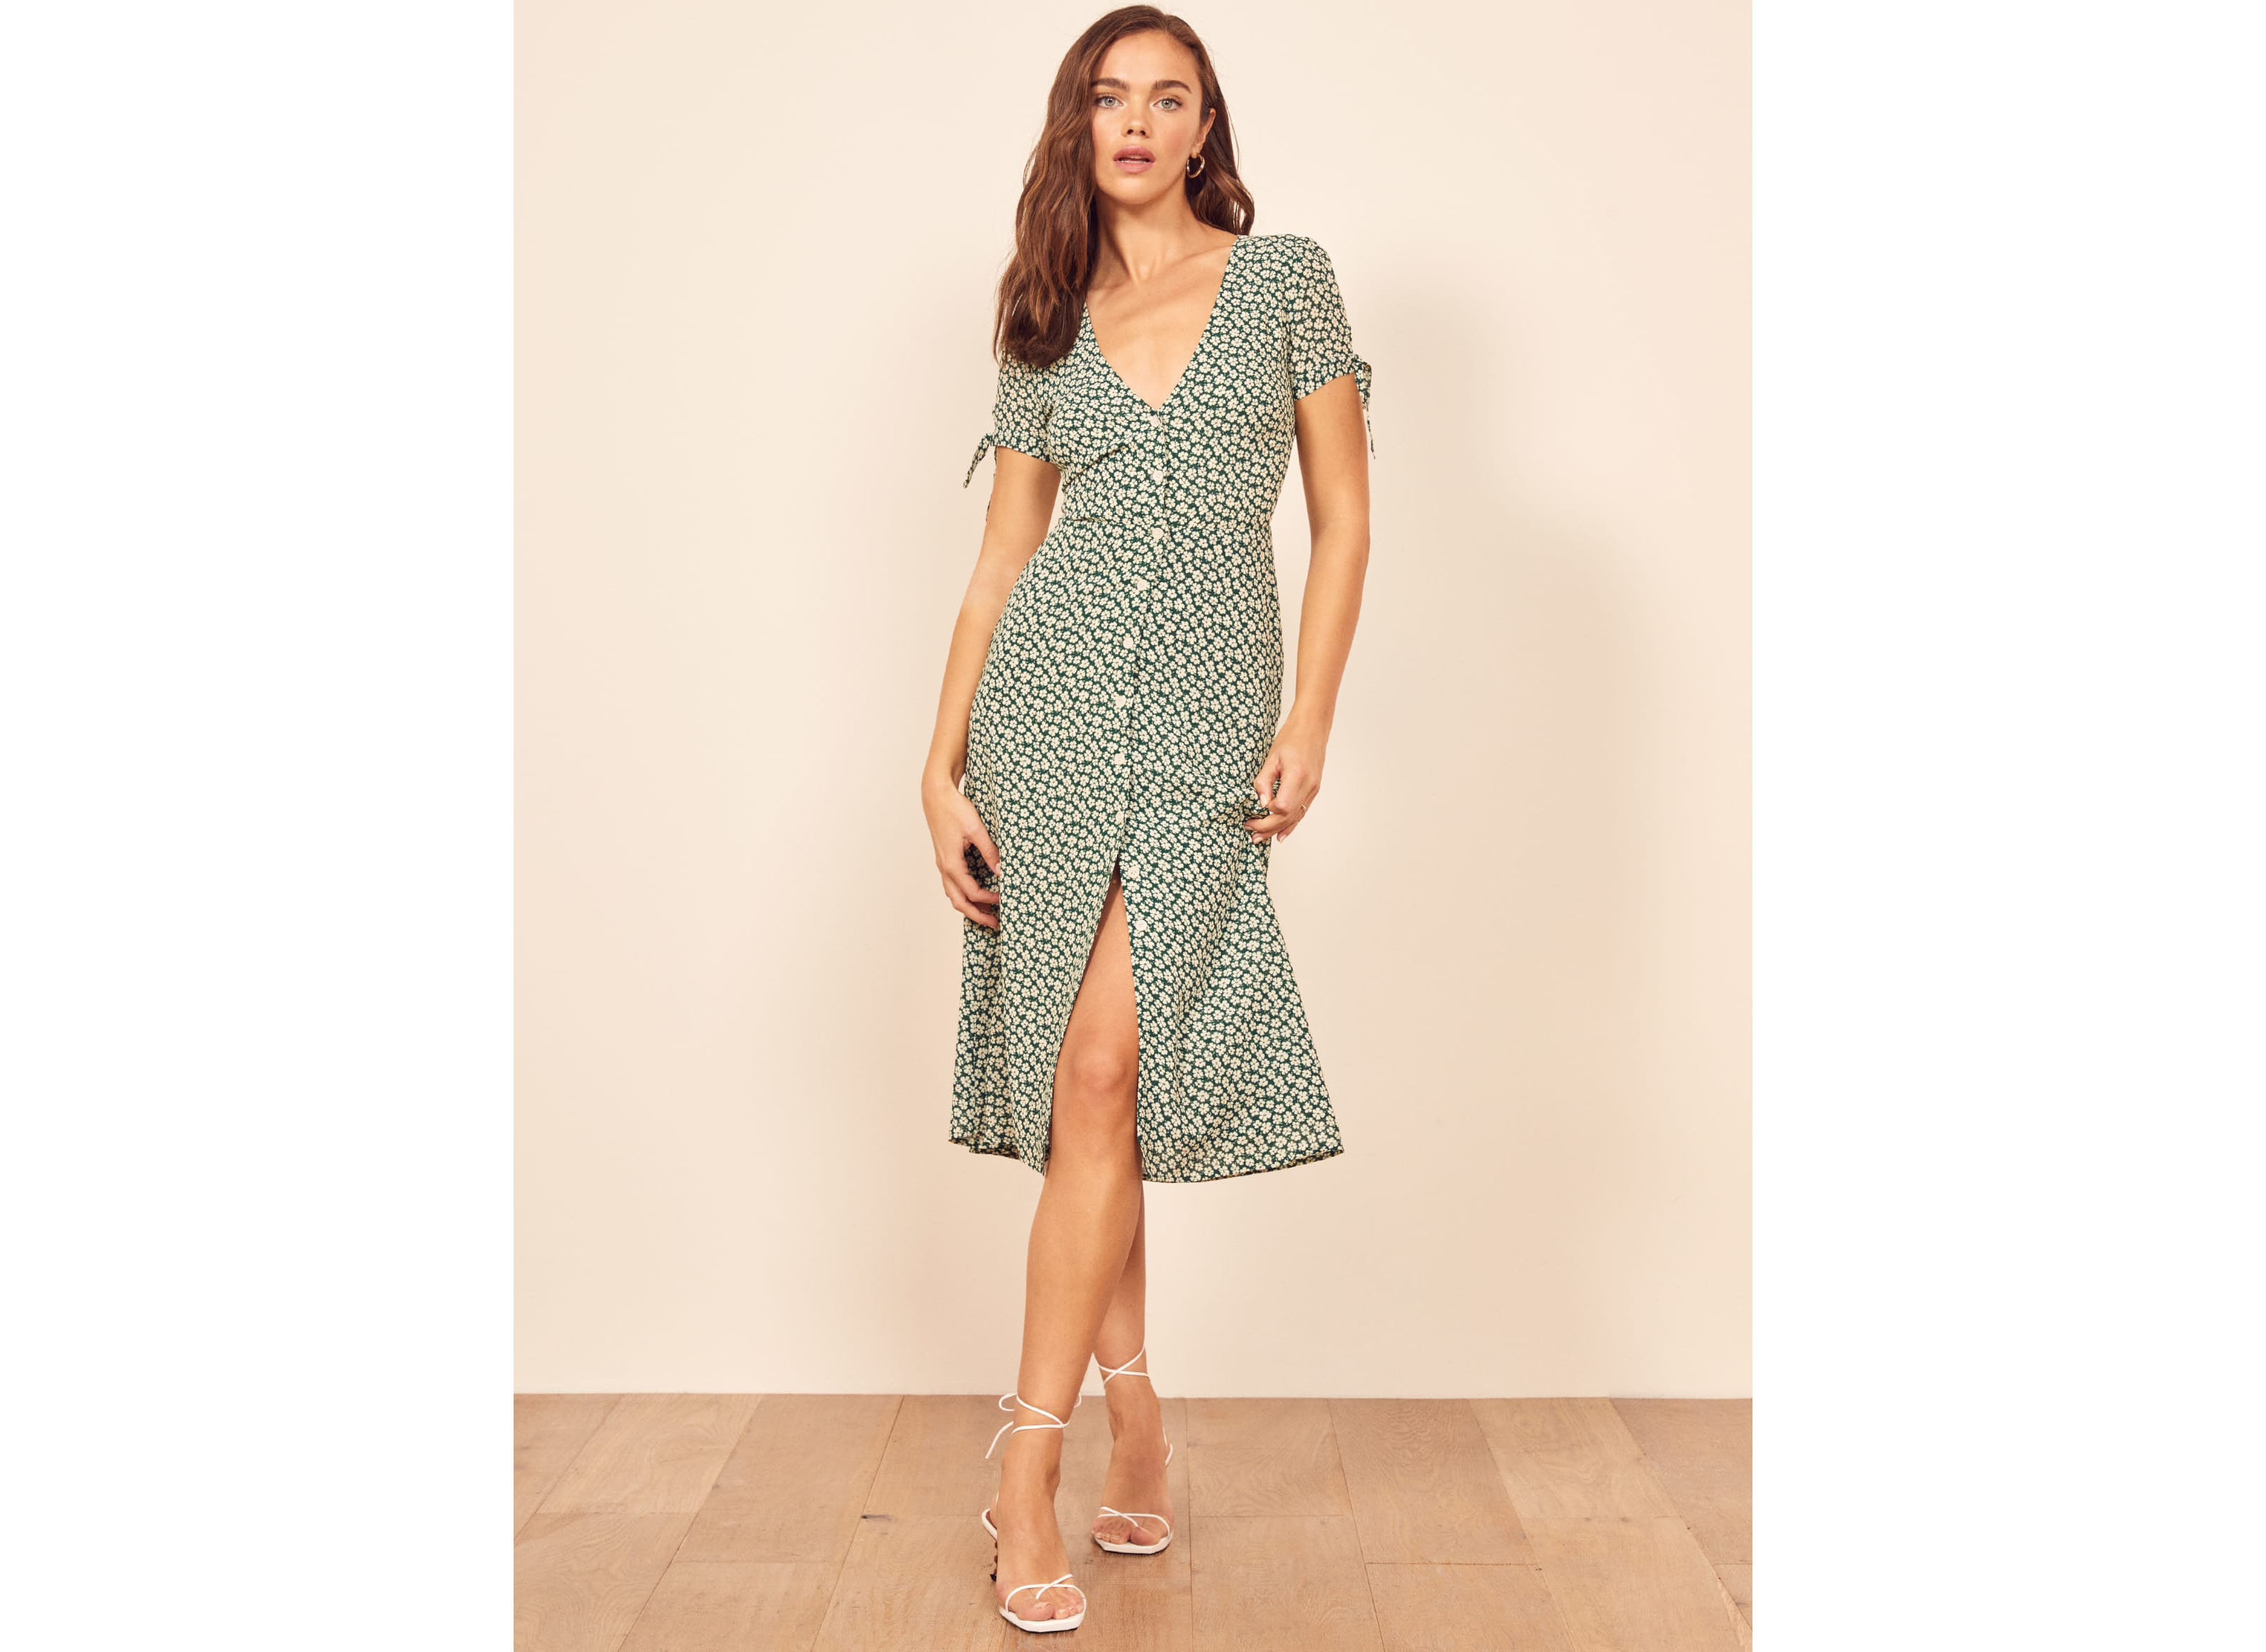 Rosalinda Dress from Reformation